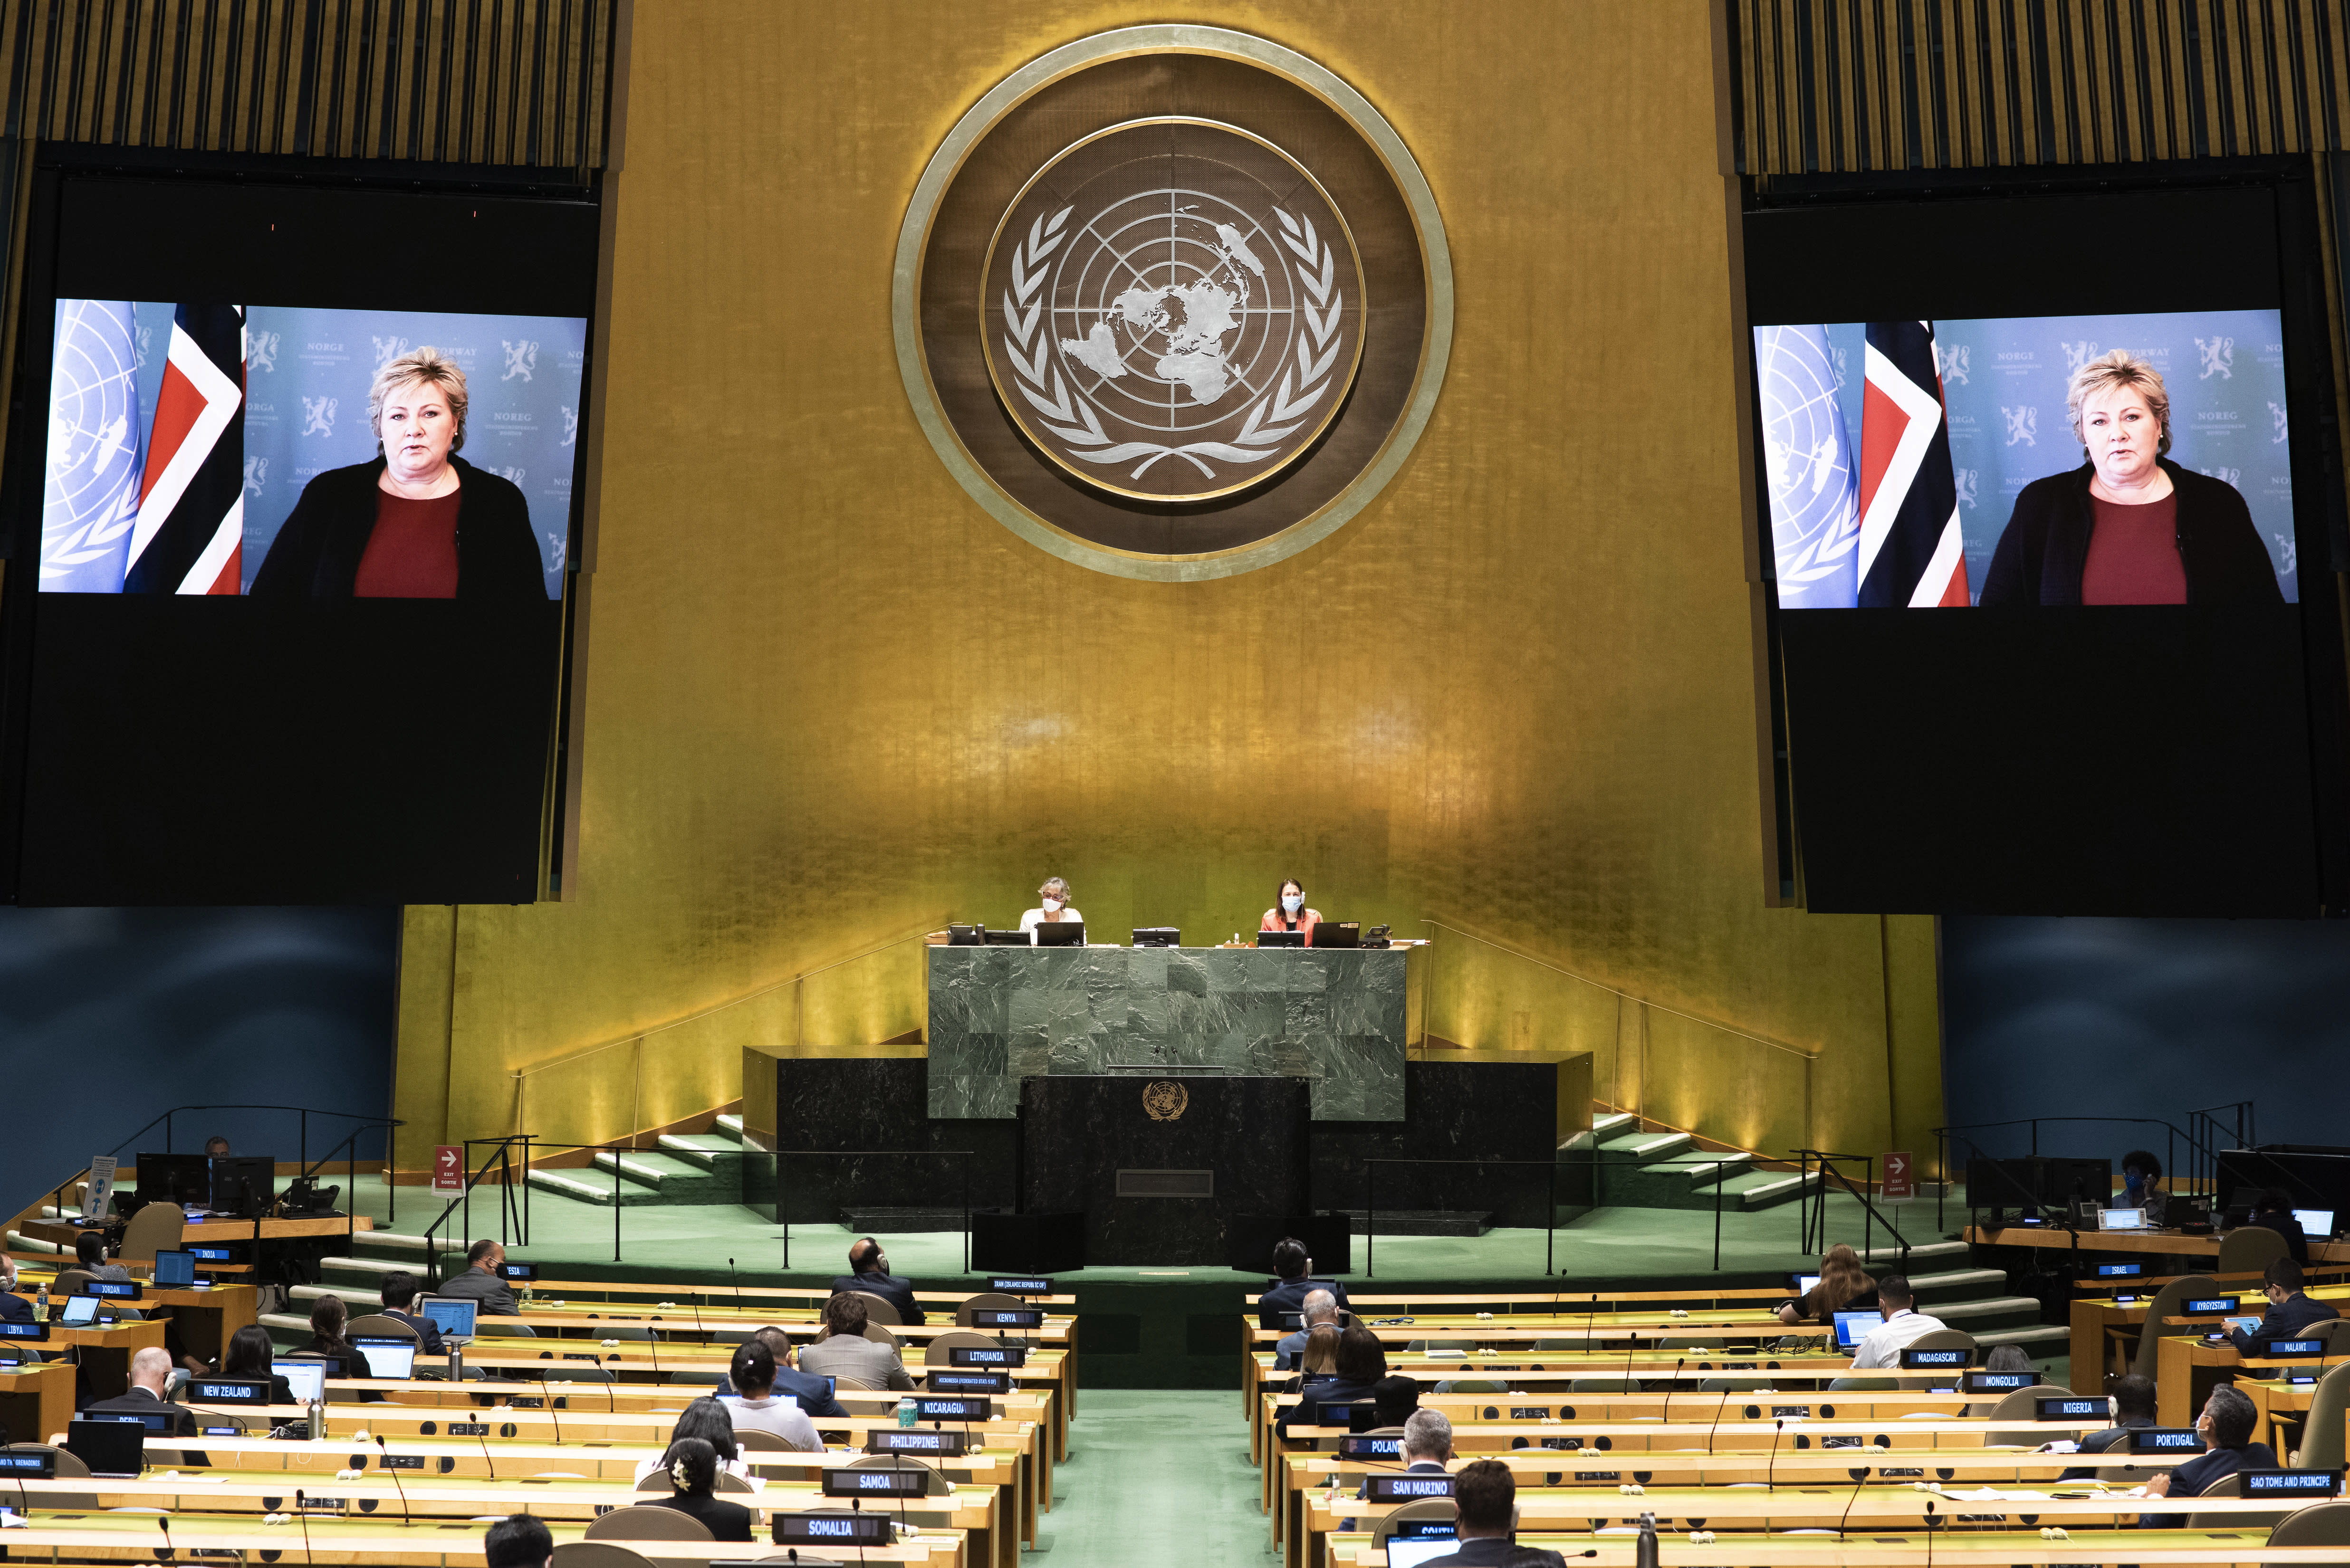 In this photo provided by the United Nations, Erna Solberg, Prime Minister of Norway, speaks in a pre-recorded message which was played during the 75th session of the United Nations General Assembly, Saturday, Sept. 26, 2020, at the UN. headquarters. (Evan Schneider/UN Photo via AP)